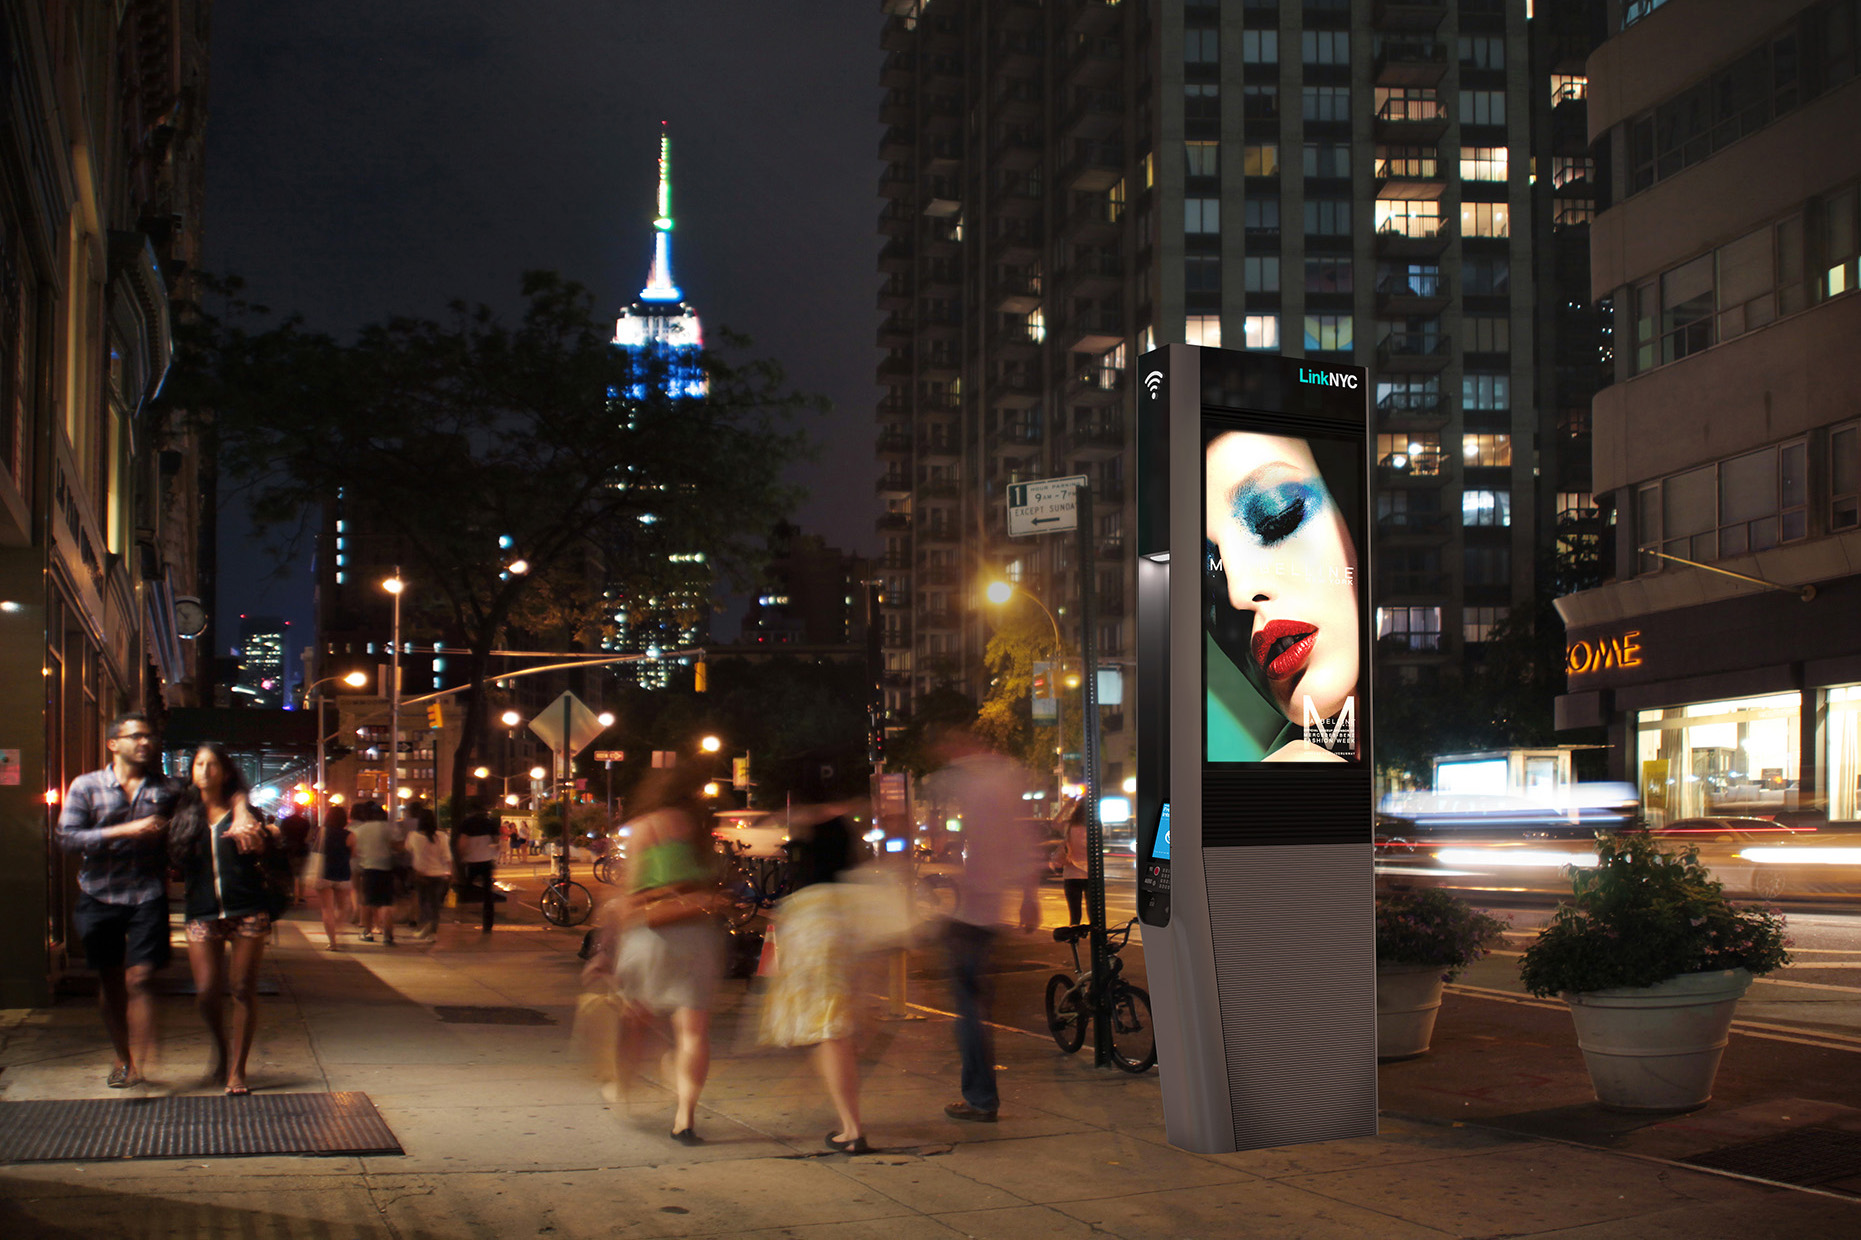 Sidewalk Labs already builds these futuristic 'payphones' that beam free Internet.